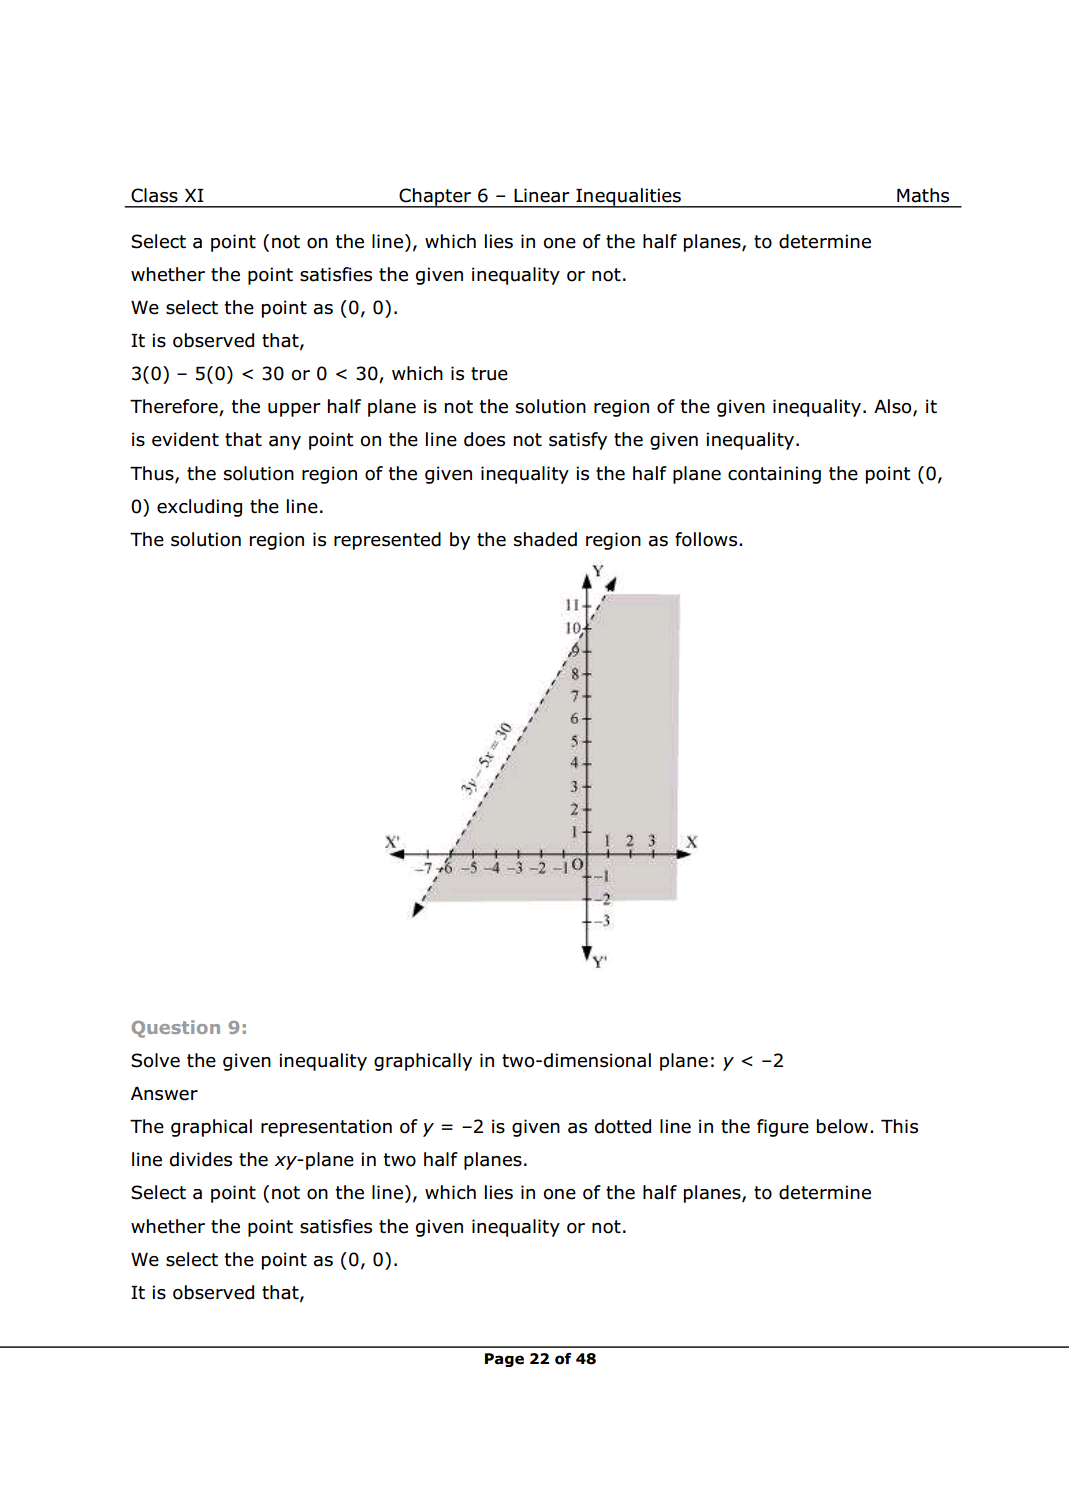 solutions image 22